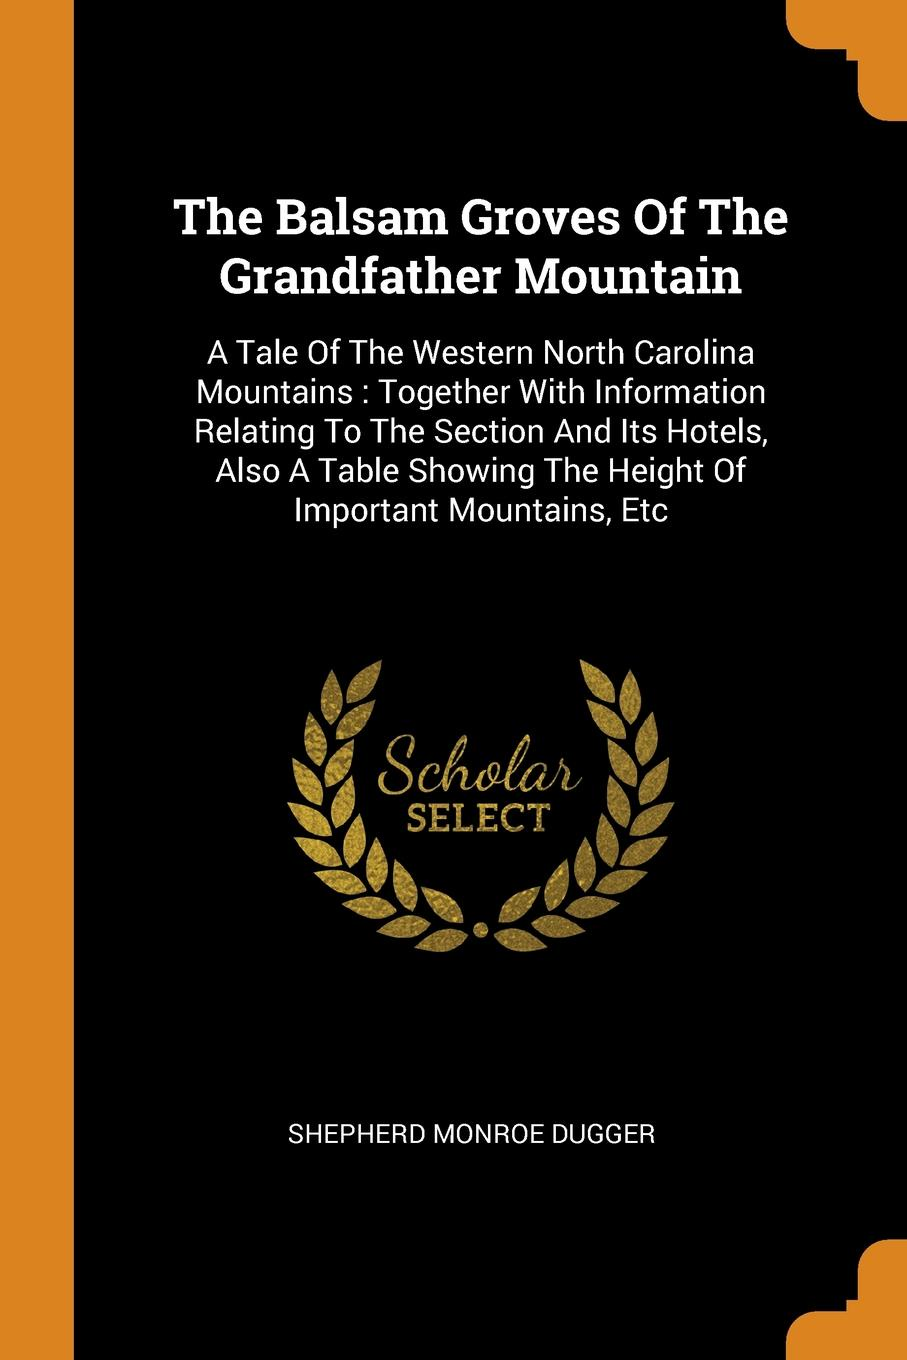 Shepherd Monroe Dugger The Balsam Groves Of The Grandfather Mountain. A Tale Of The Western North Carolina Mountains : Together With Information Relating To The Section And Its Hotels, Also A Table Showing The Height Of Important Mountains, Etc